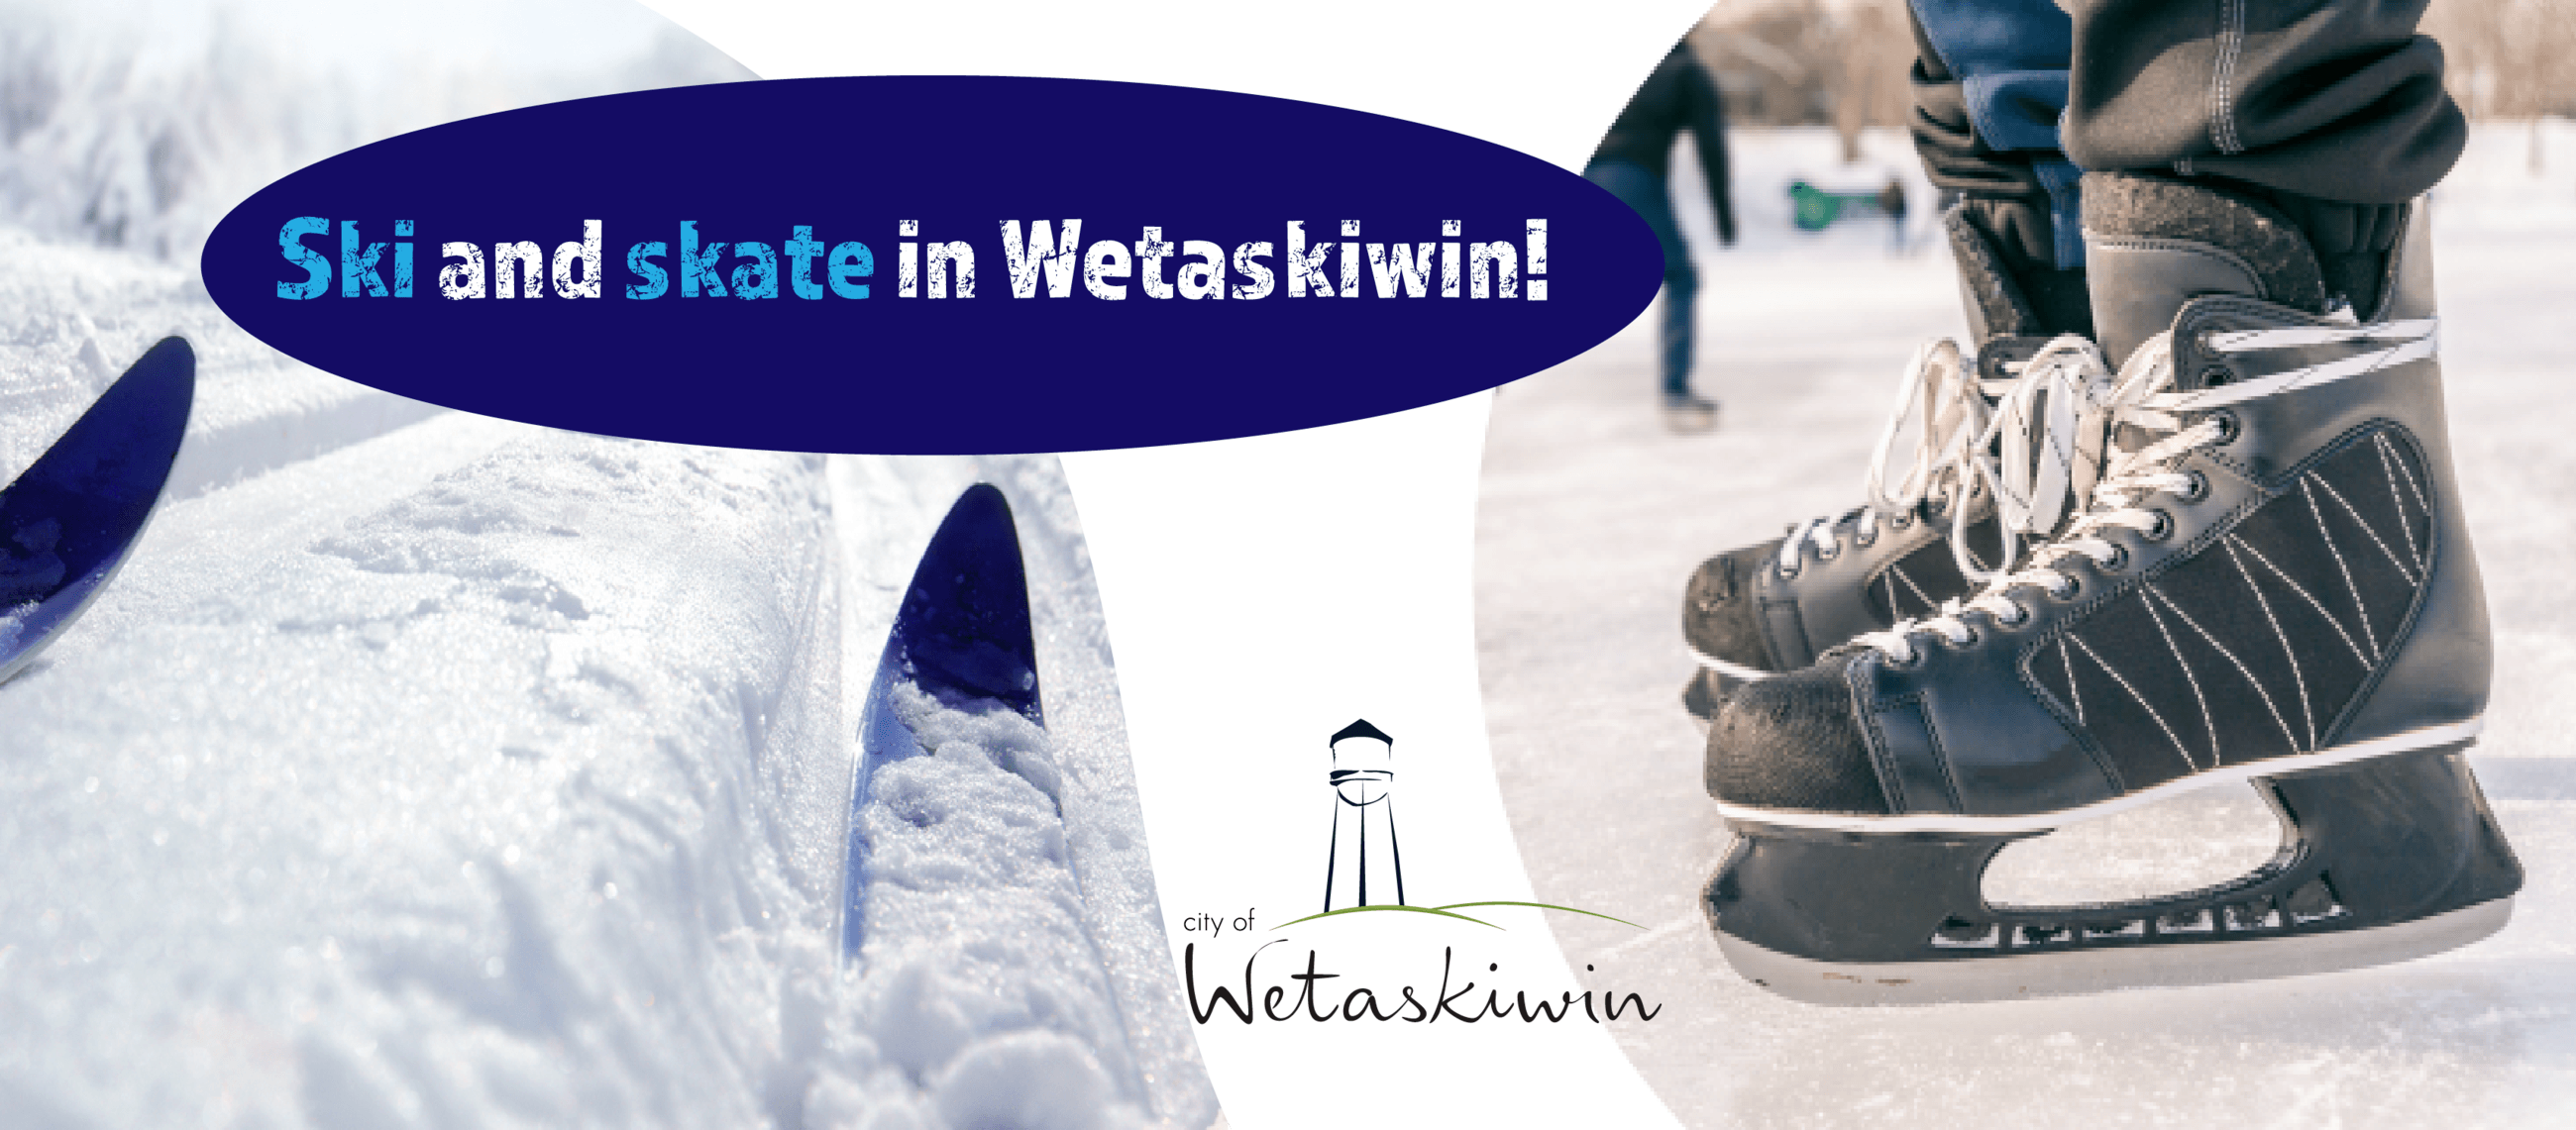 Ski and Skate in Wetaskiwin-01